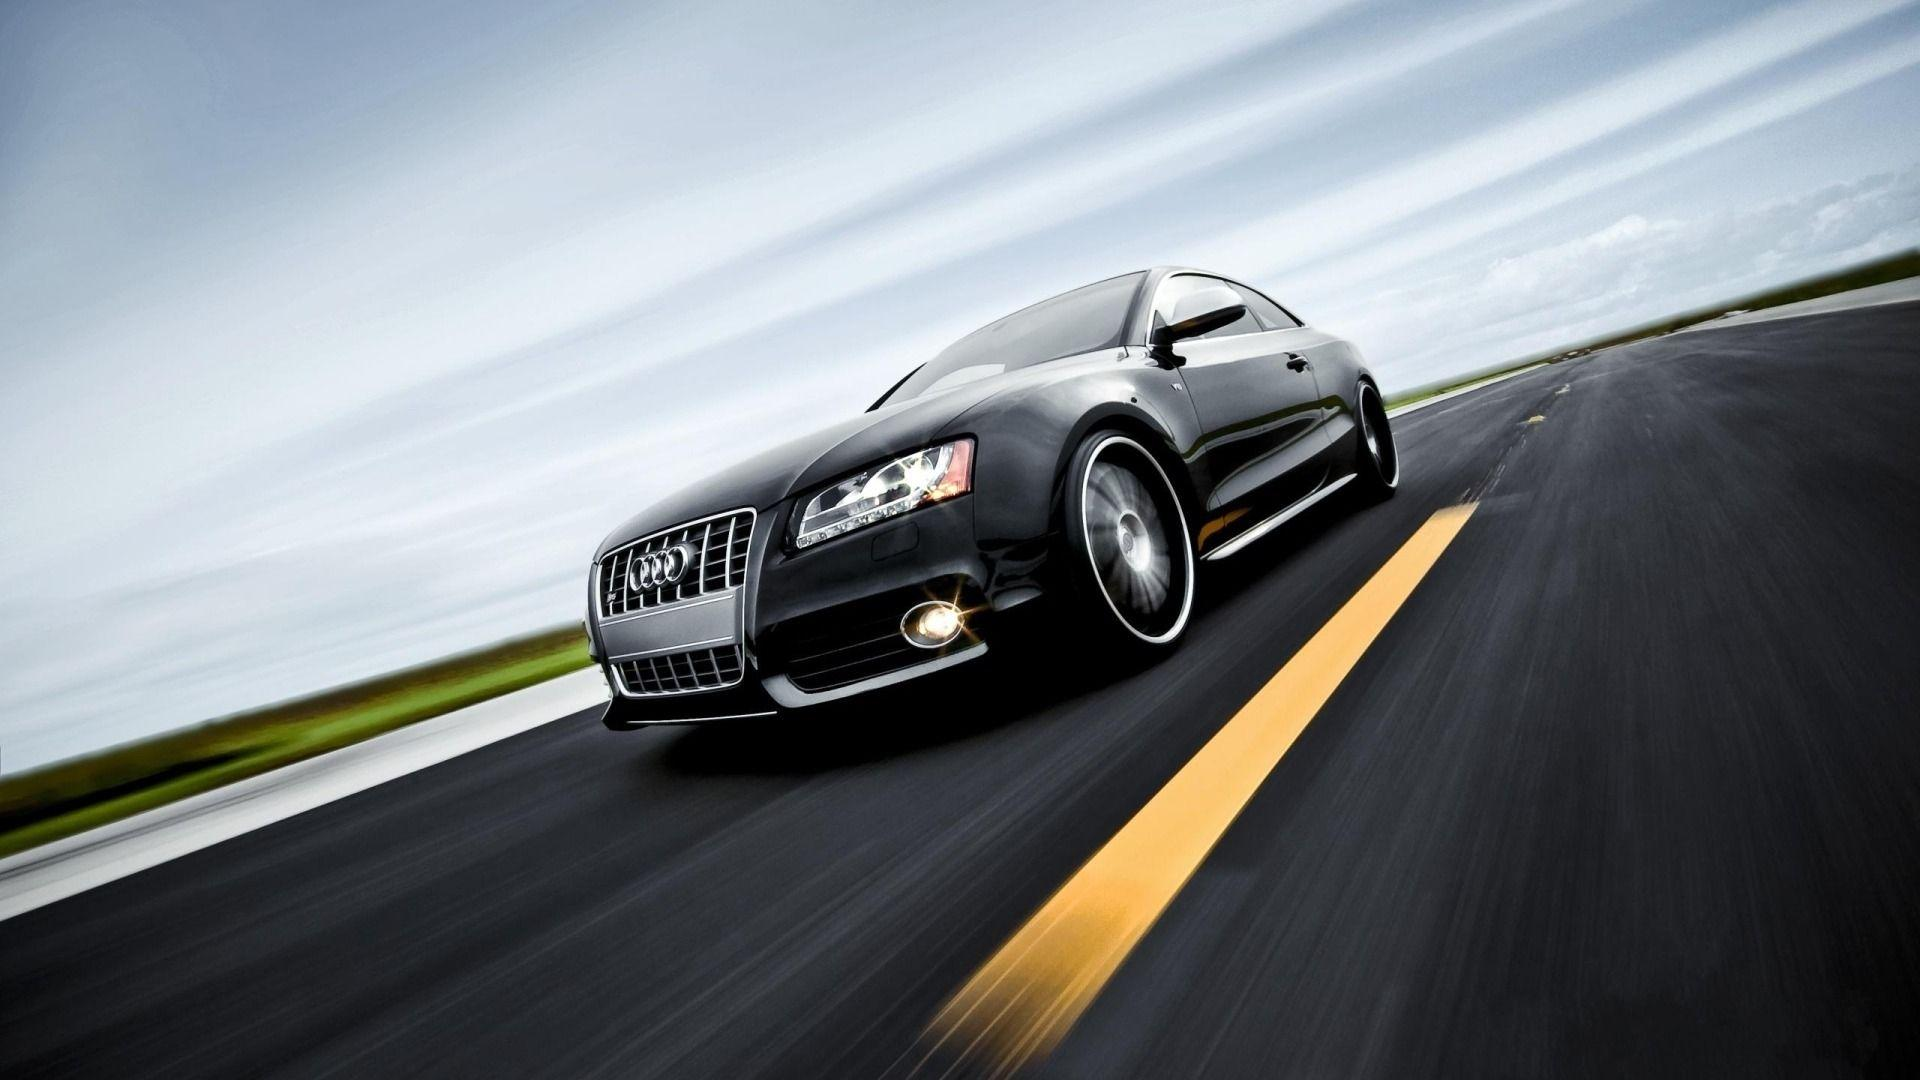 Awesome Audi Wallpaper 45038 1920x1080 px ~ HDWallSource.com